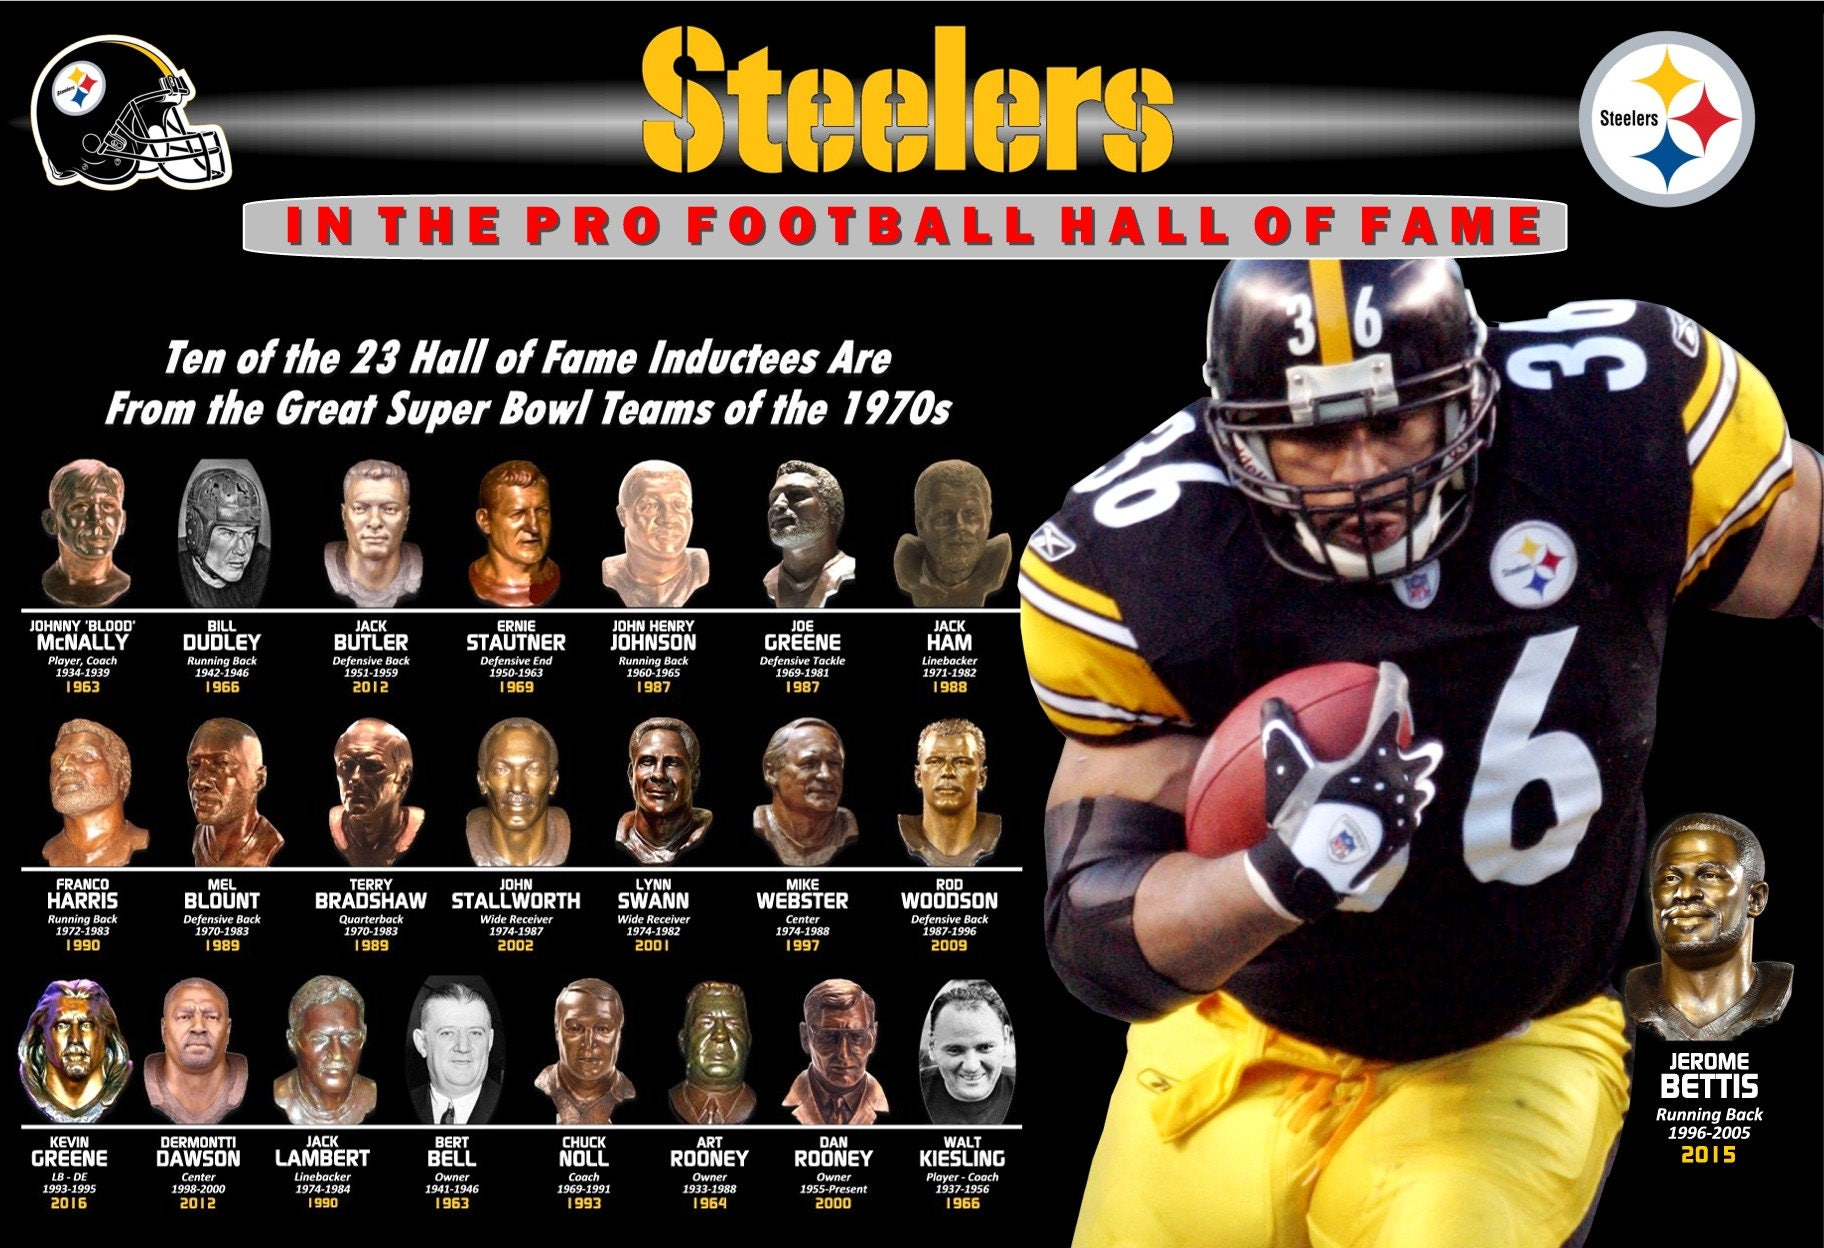 c8d6ef0e0 Steelers in the Hall of Fame Featuring Jerome Bettis